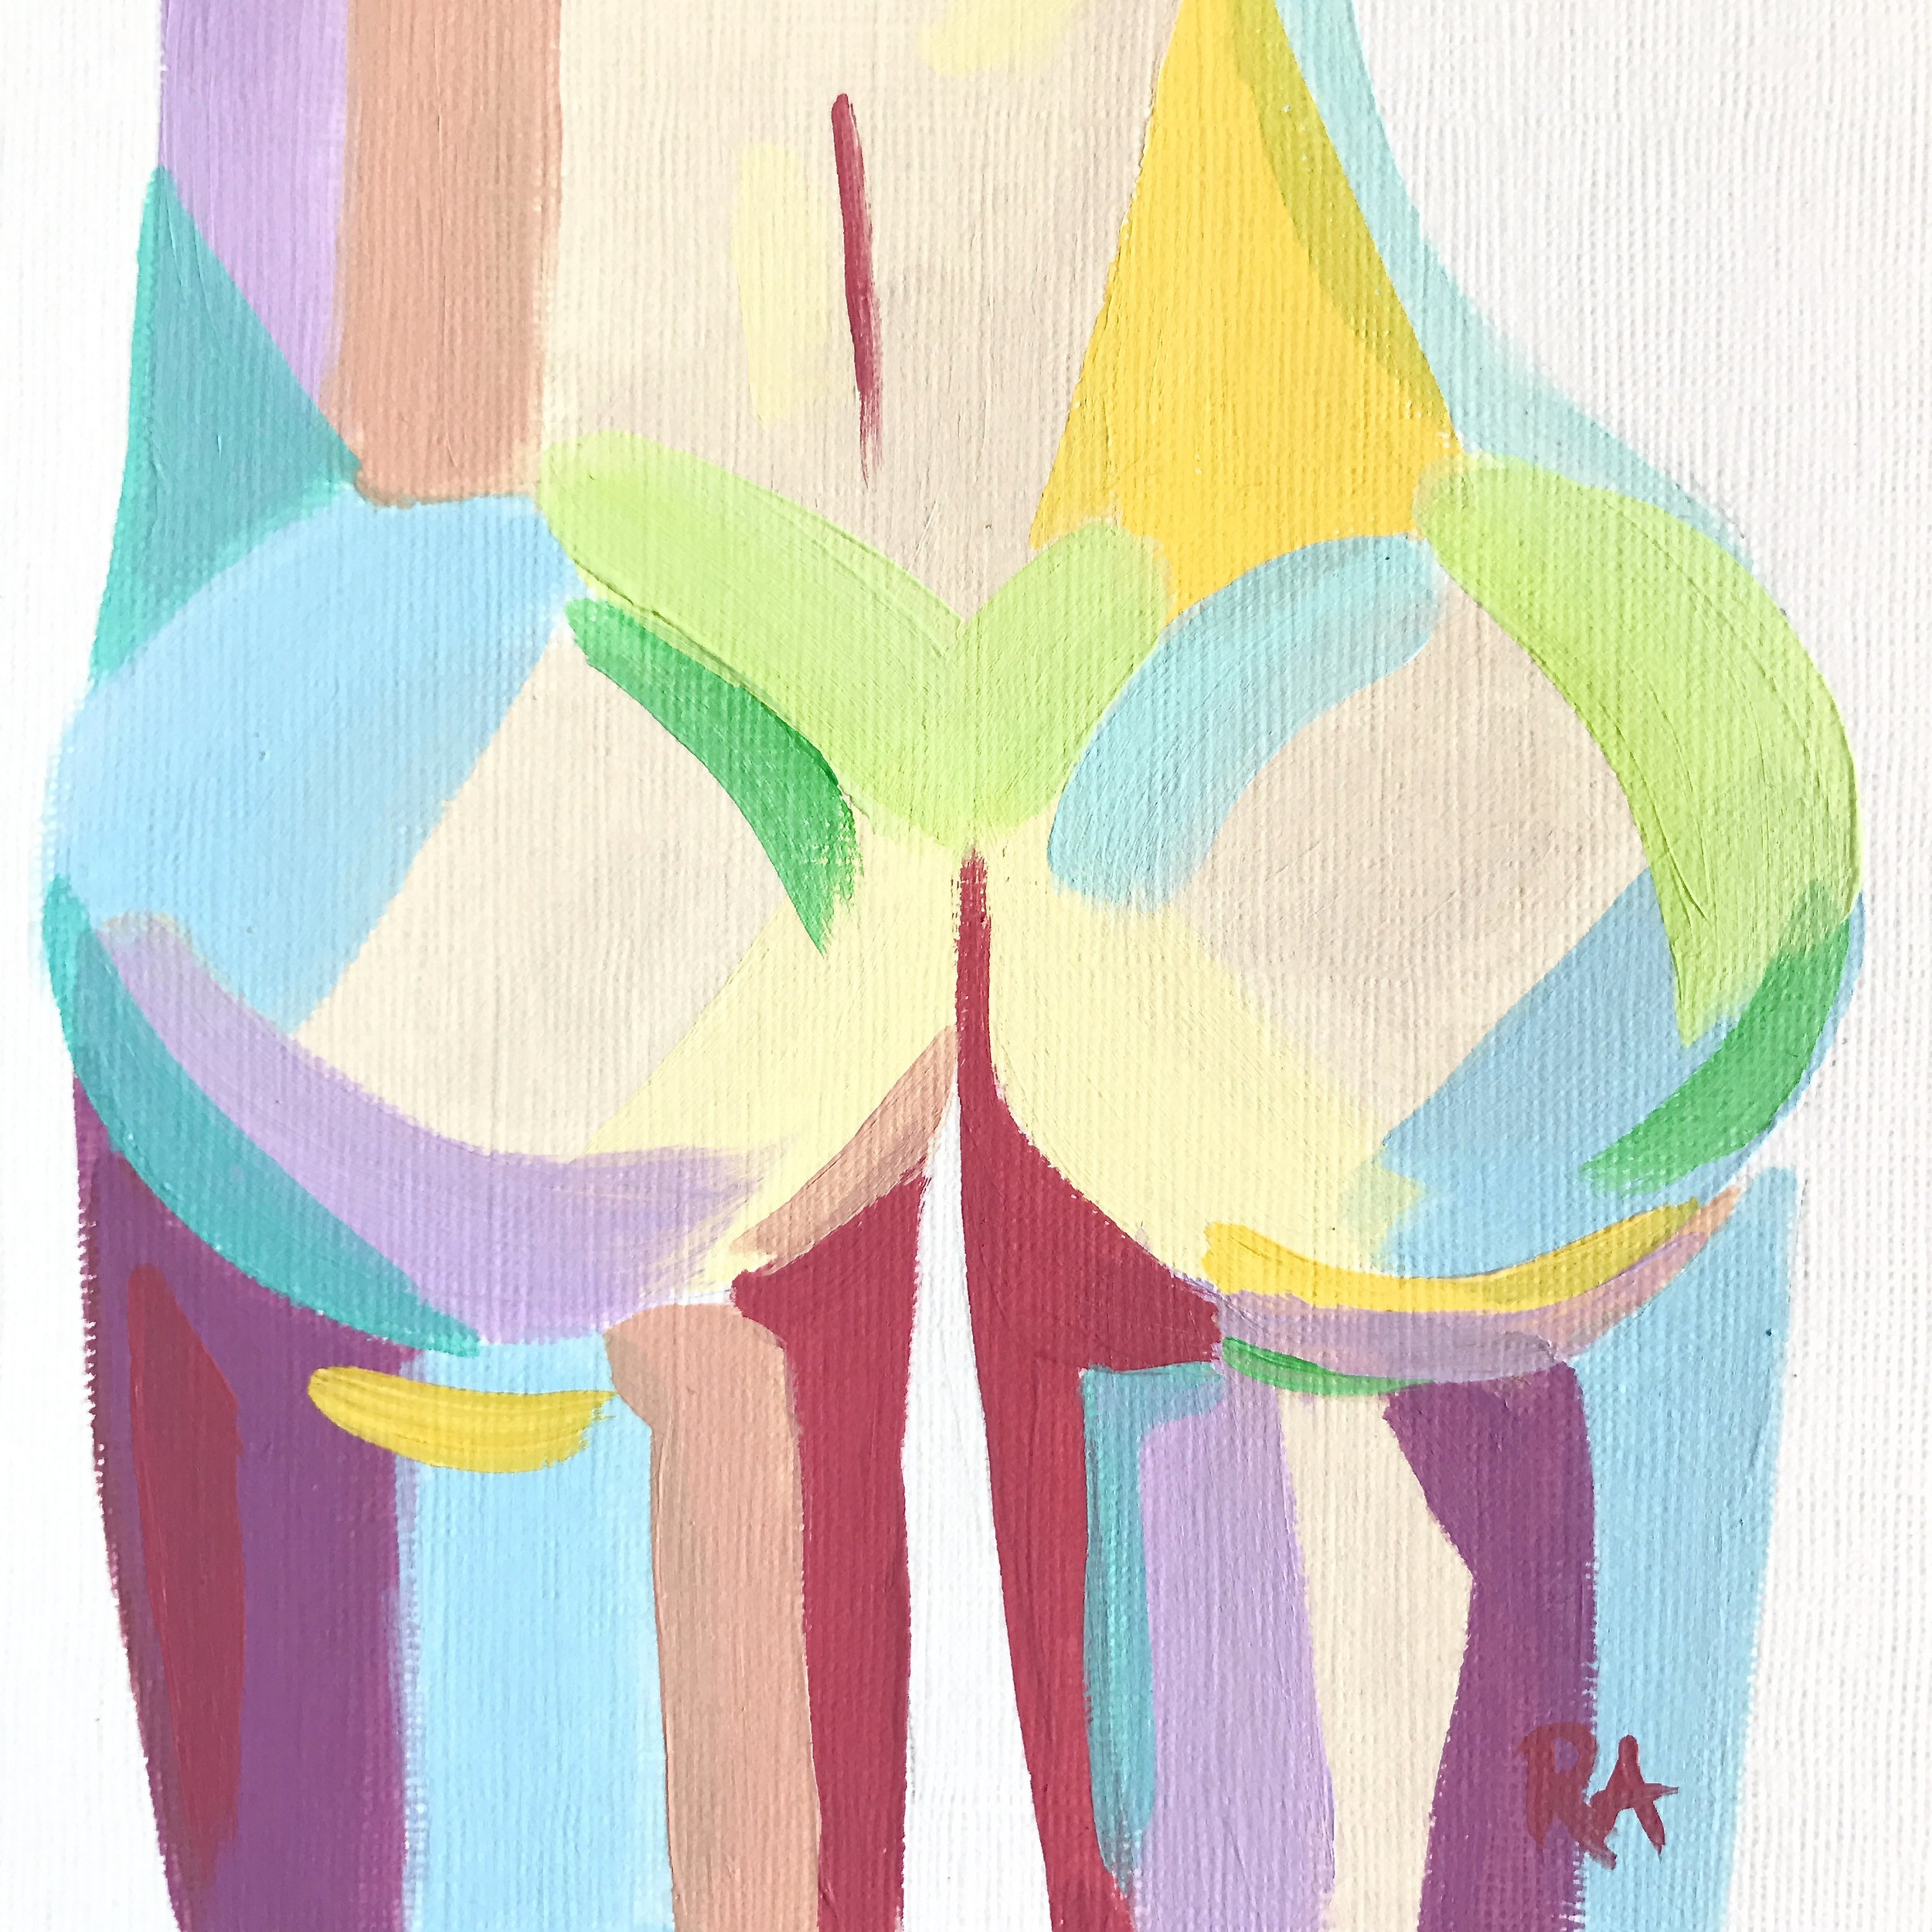 Sherbert Booty - Beautiful butt, no squats necessary.6.x6, $50